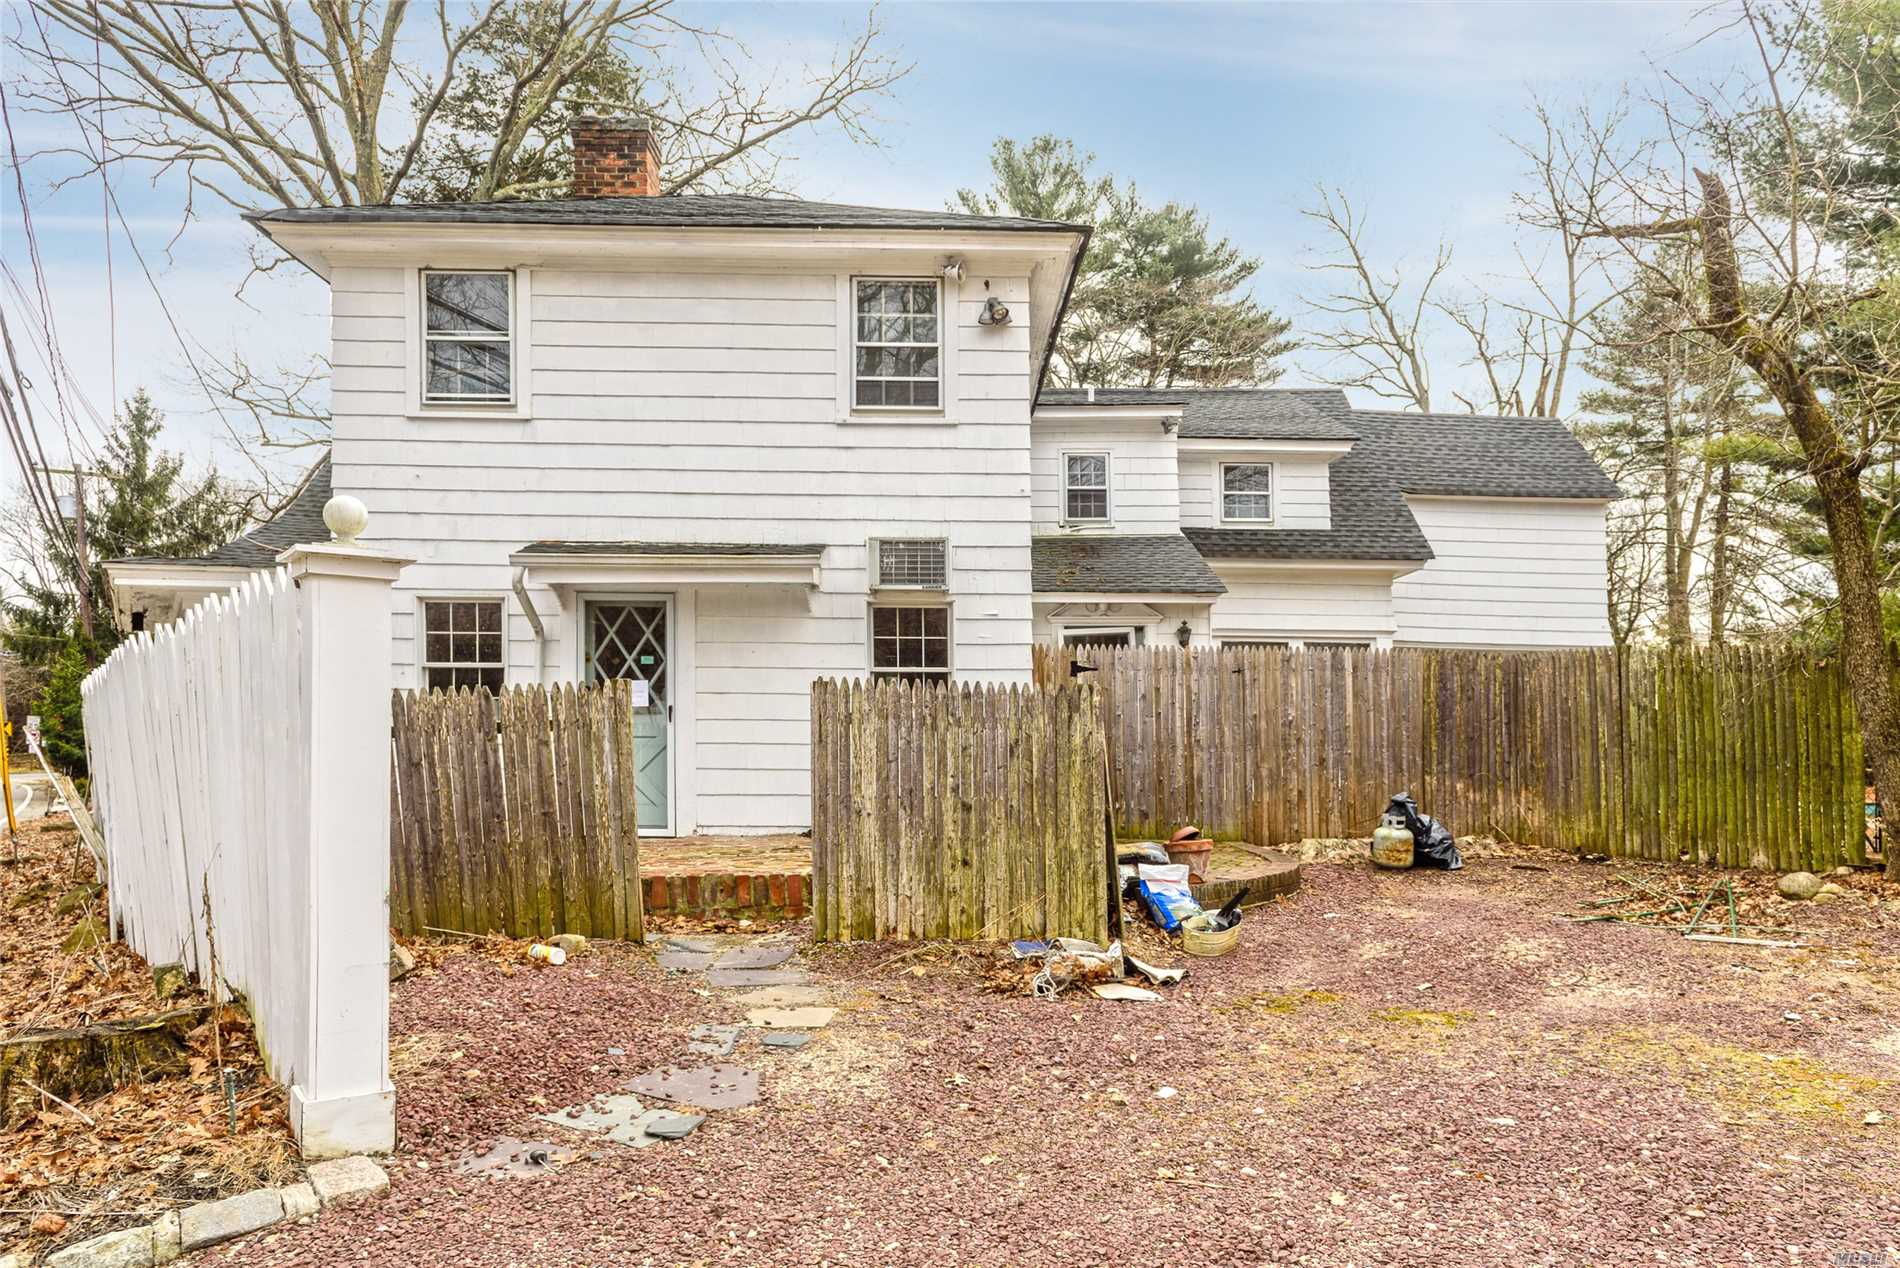 East Hills. Great Opportunity Awaits For This 6 Bedroom, 3.5 Bath Colonial/Farmhouse In The Village Of East Hills. 2 Fireplaces, Dual Staircases, Wood Floors Throughout. Tremendous Potential. Membership To The East Hills Park & Pool.